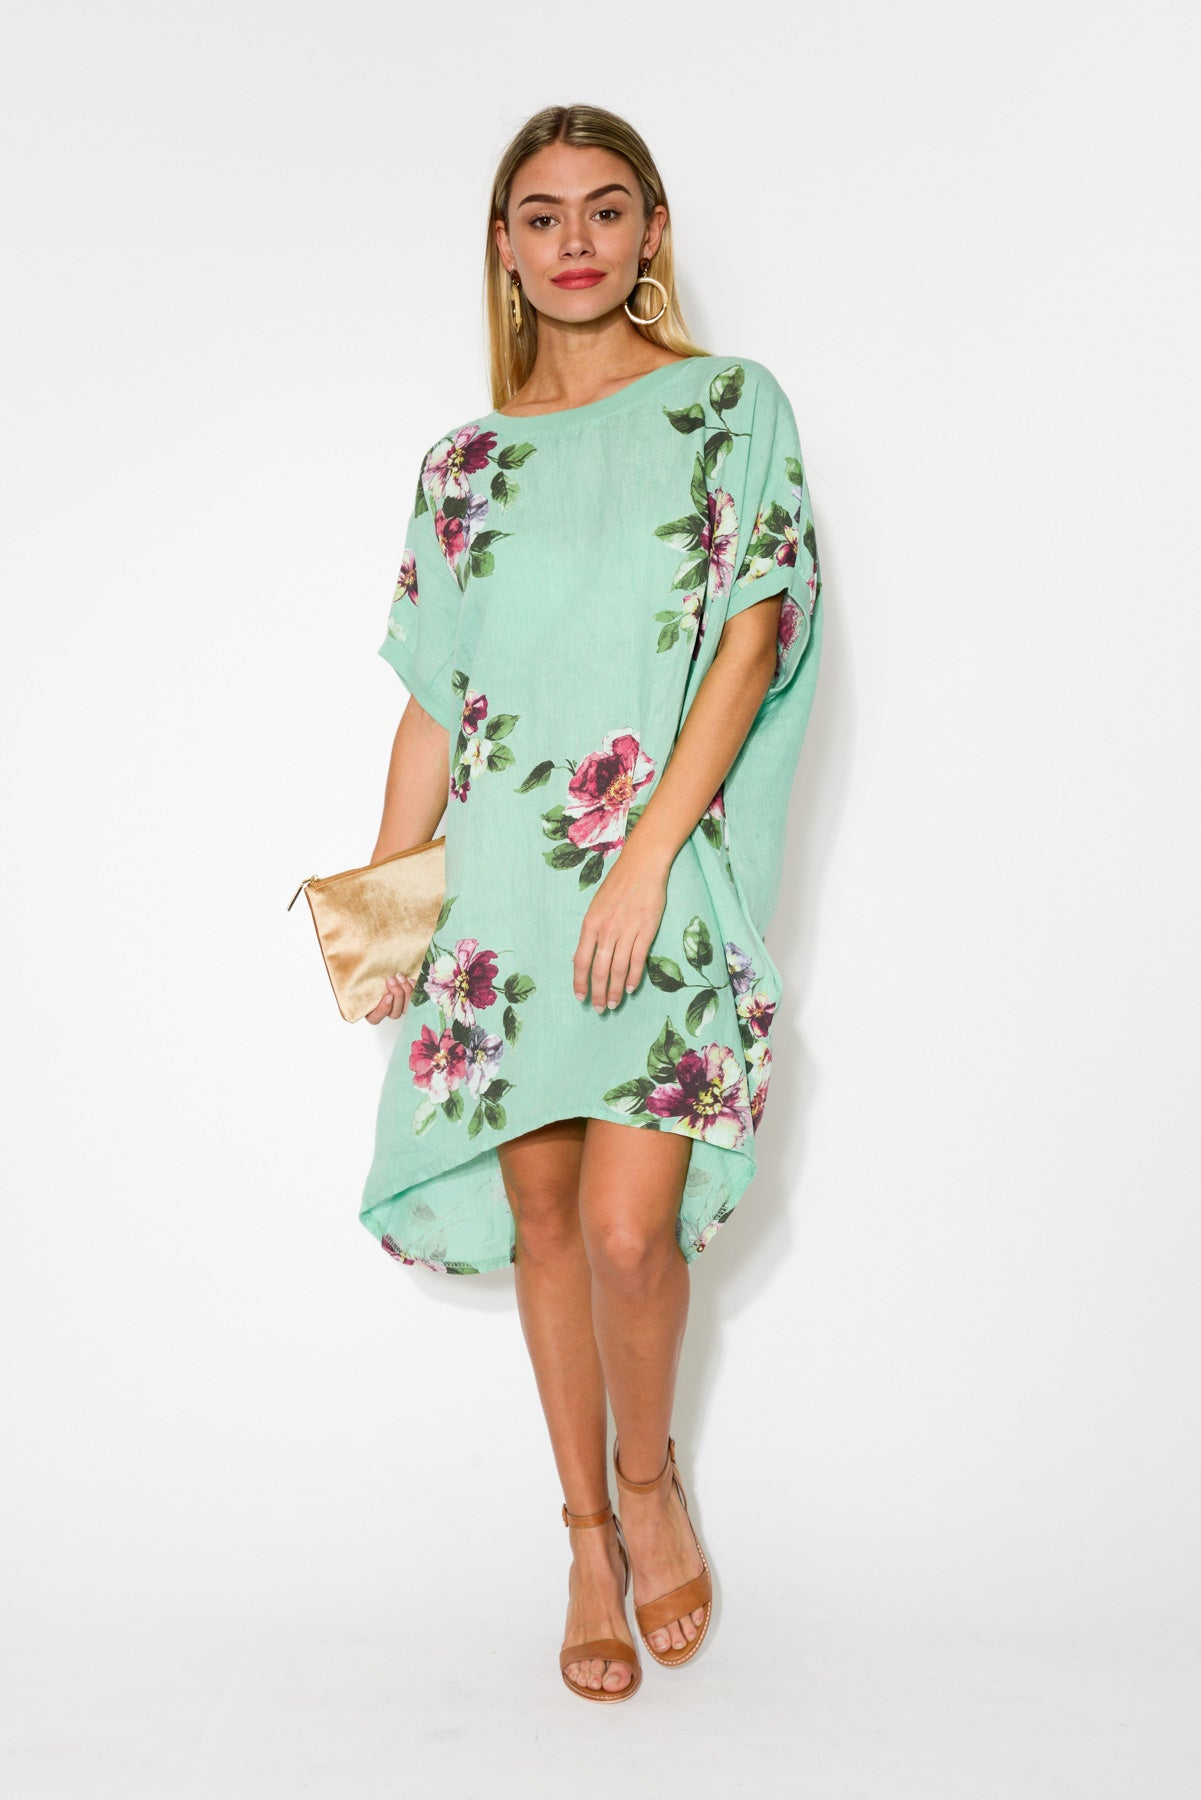 Naples Green Floral Linen Dress - Blue Bungalow